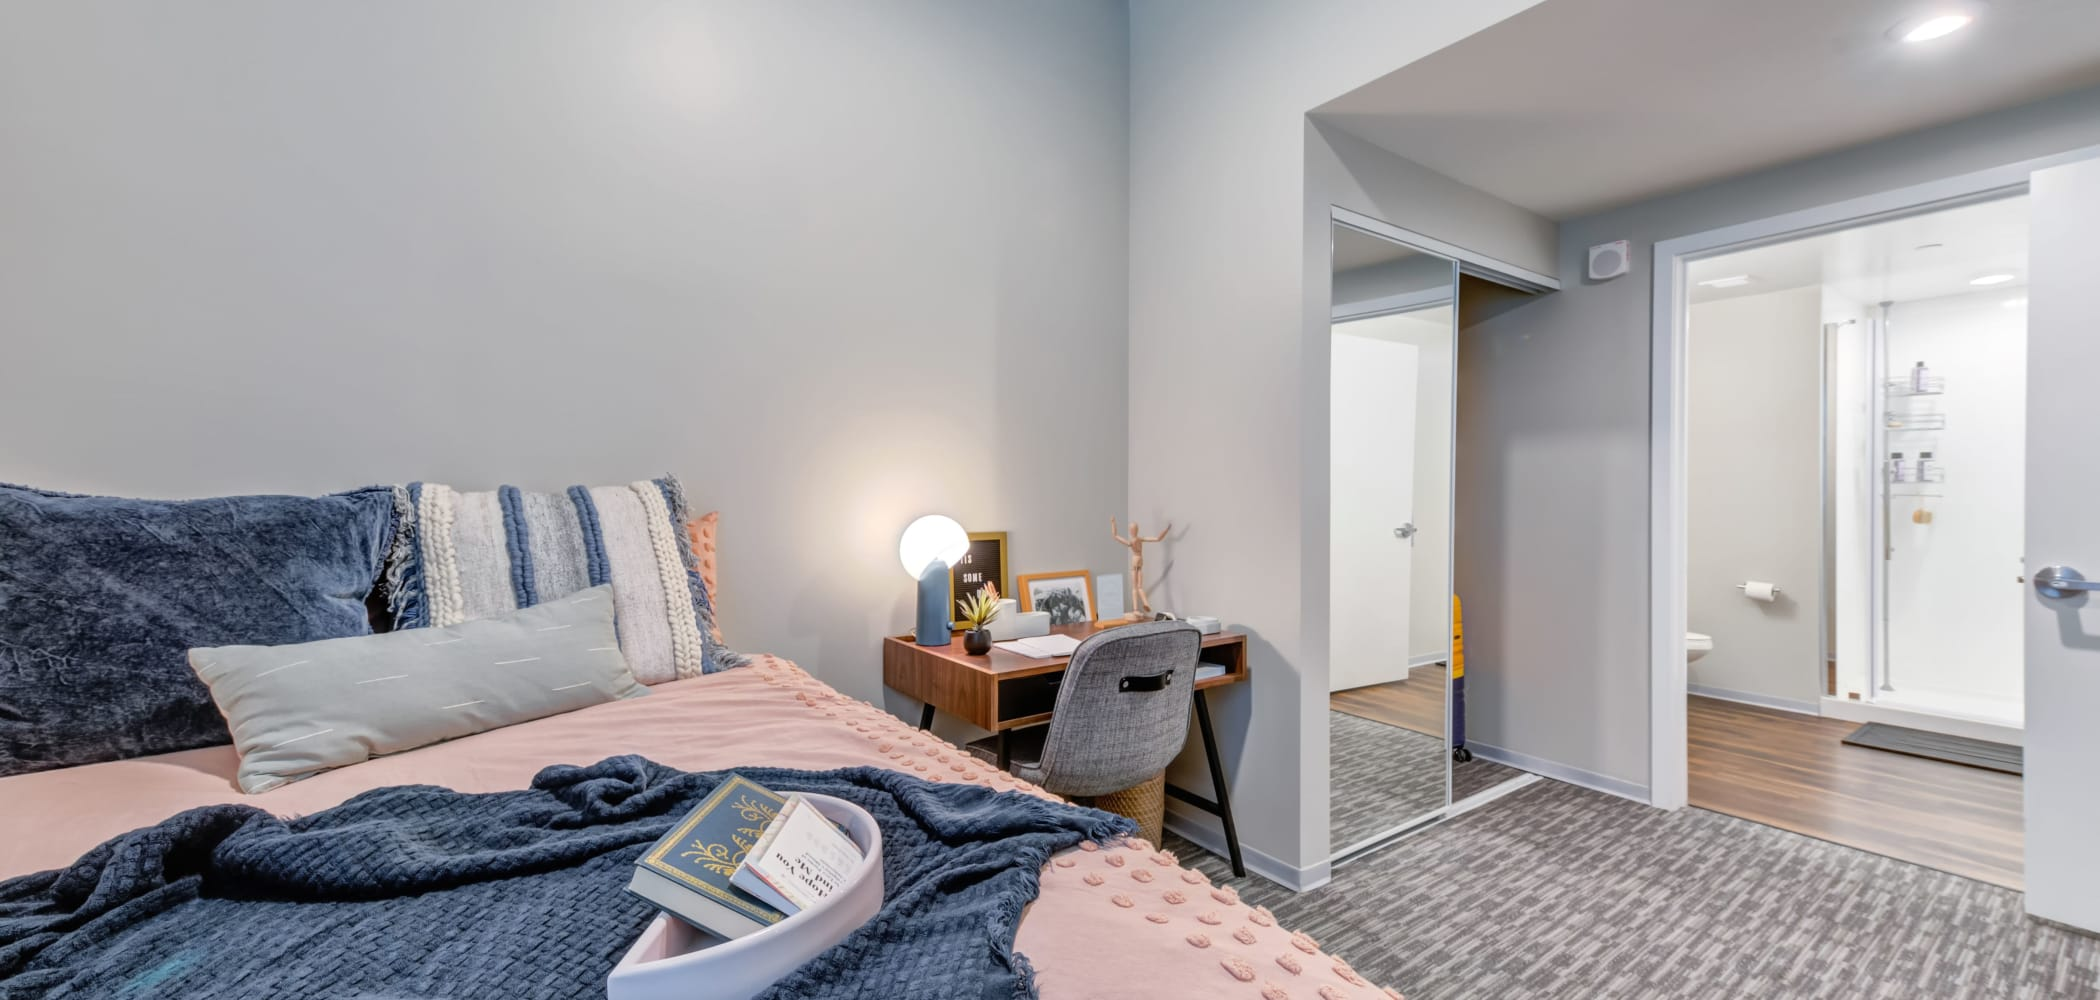 Cozy bedroom at RISE on Chauncey in West Lafayette, Indiana